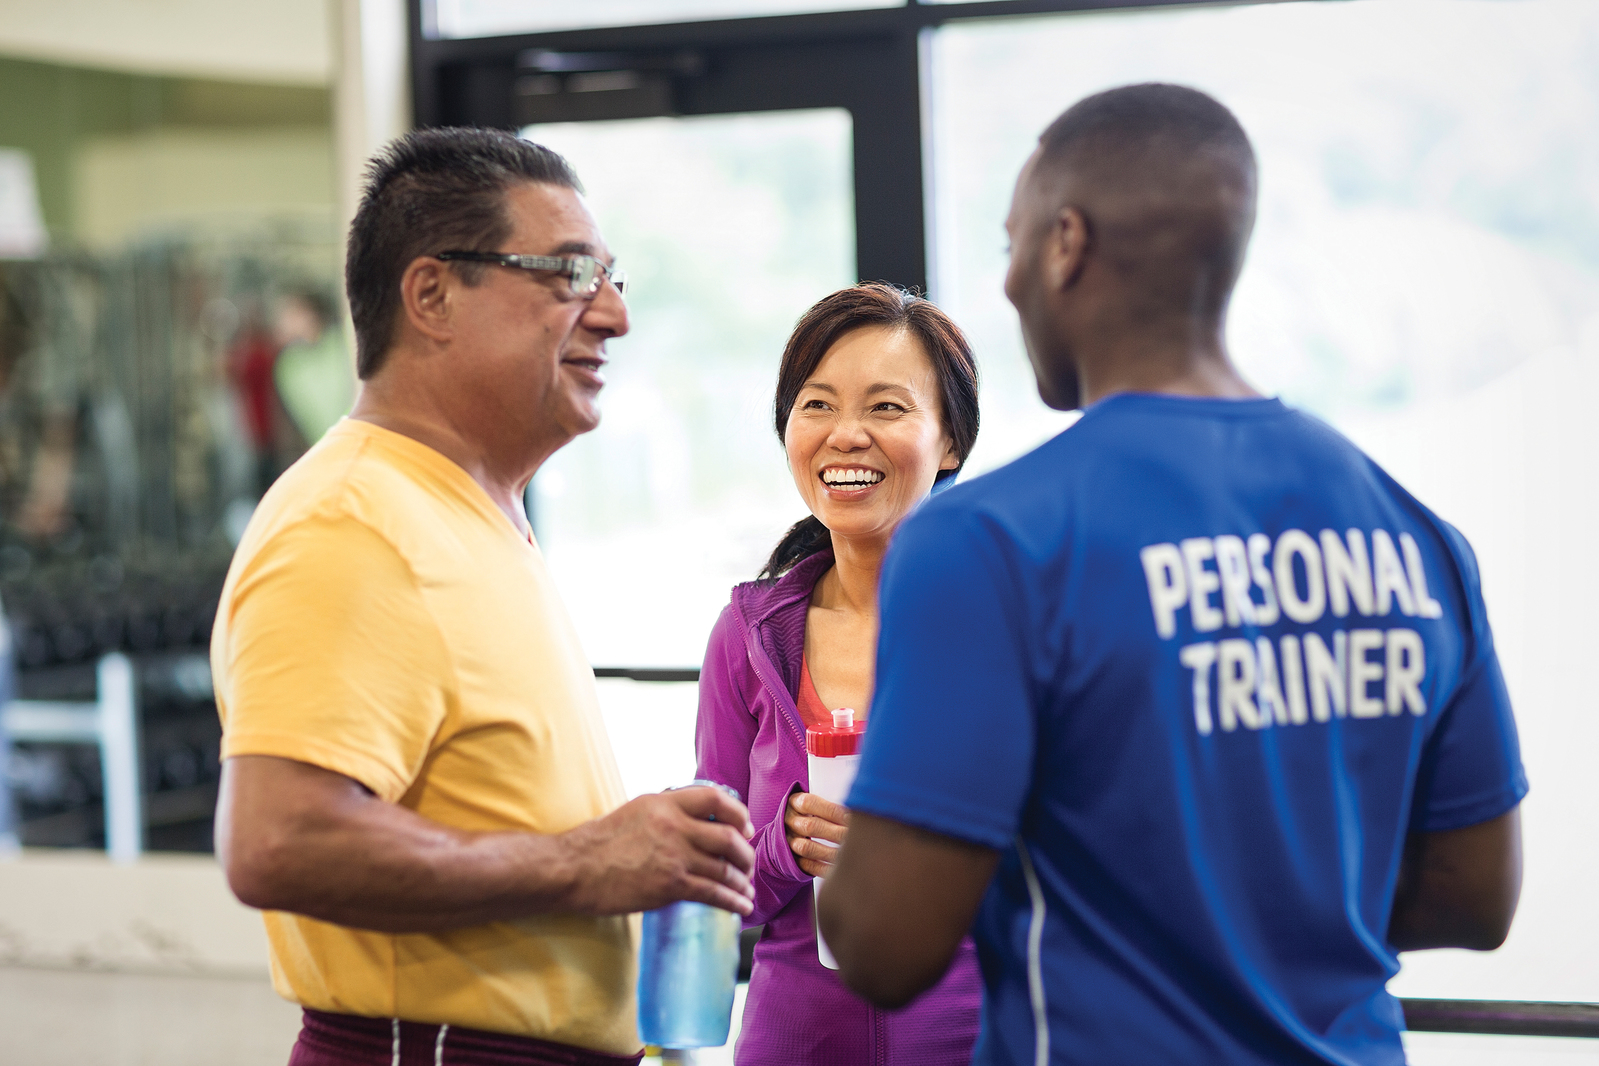 Male personal trainer speaking with 2 potential clients